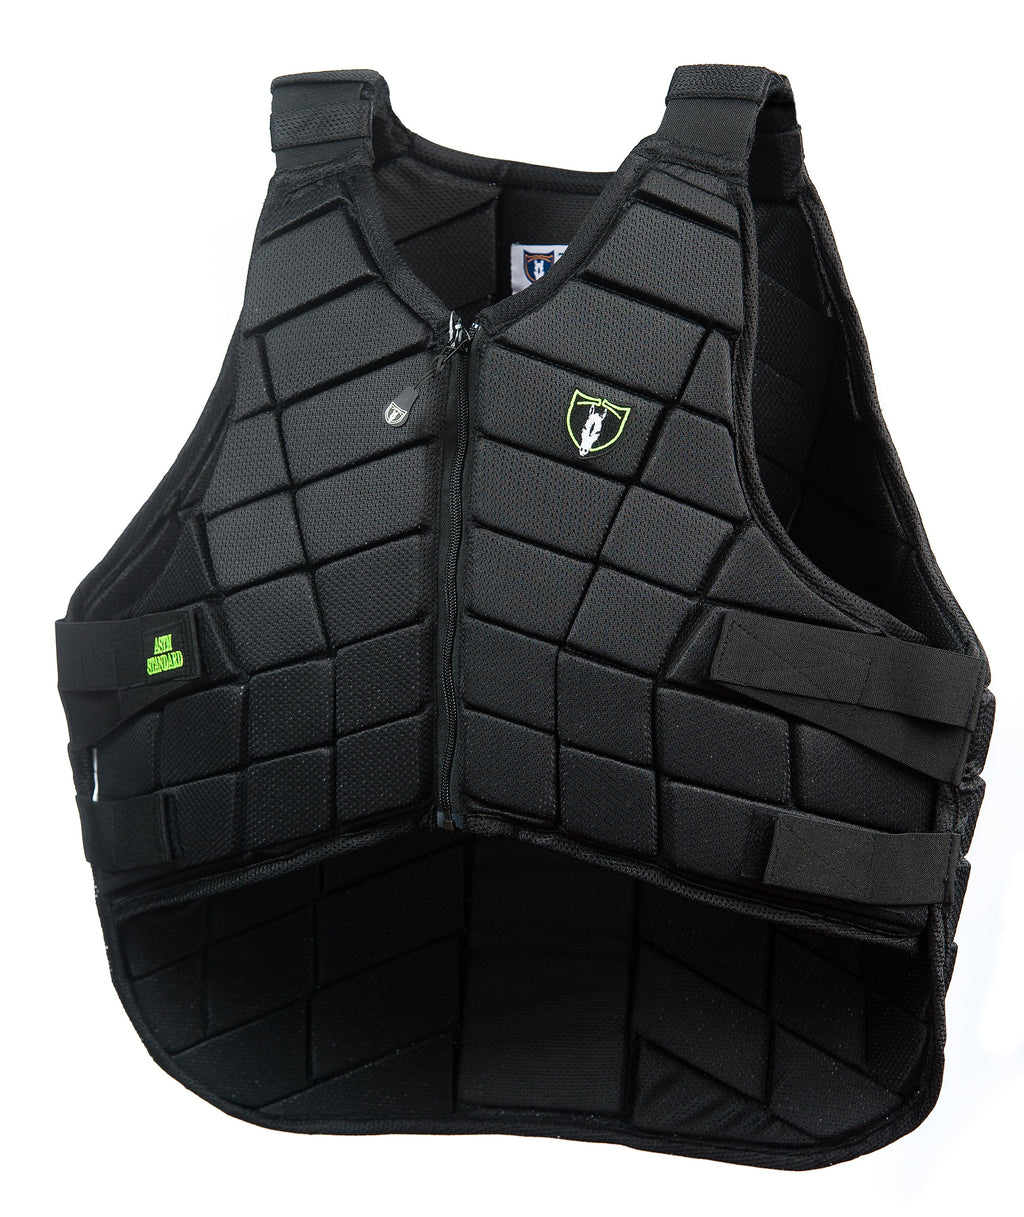 Tipperary Competitor Safety Vest | IVC Carriage